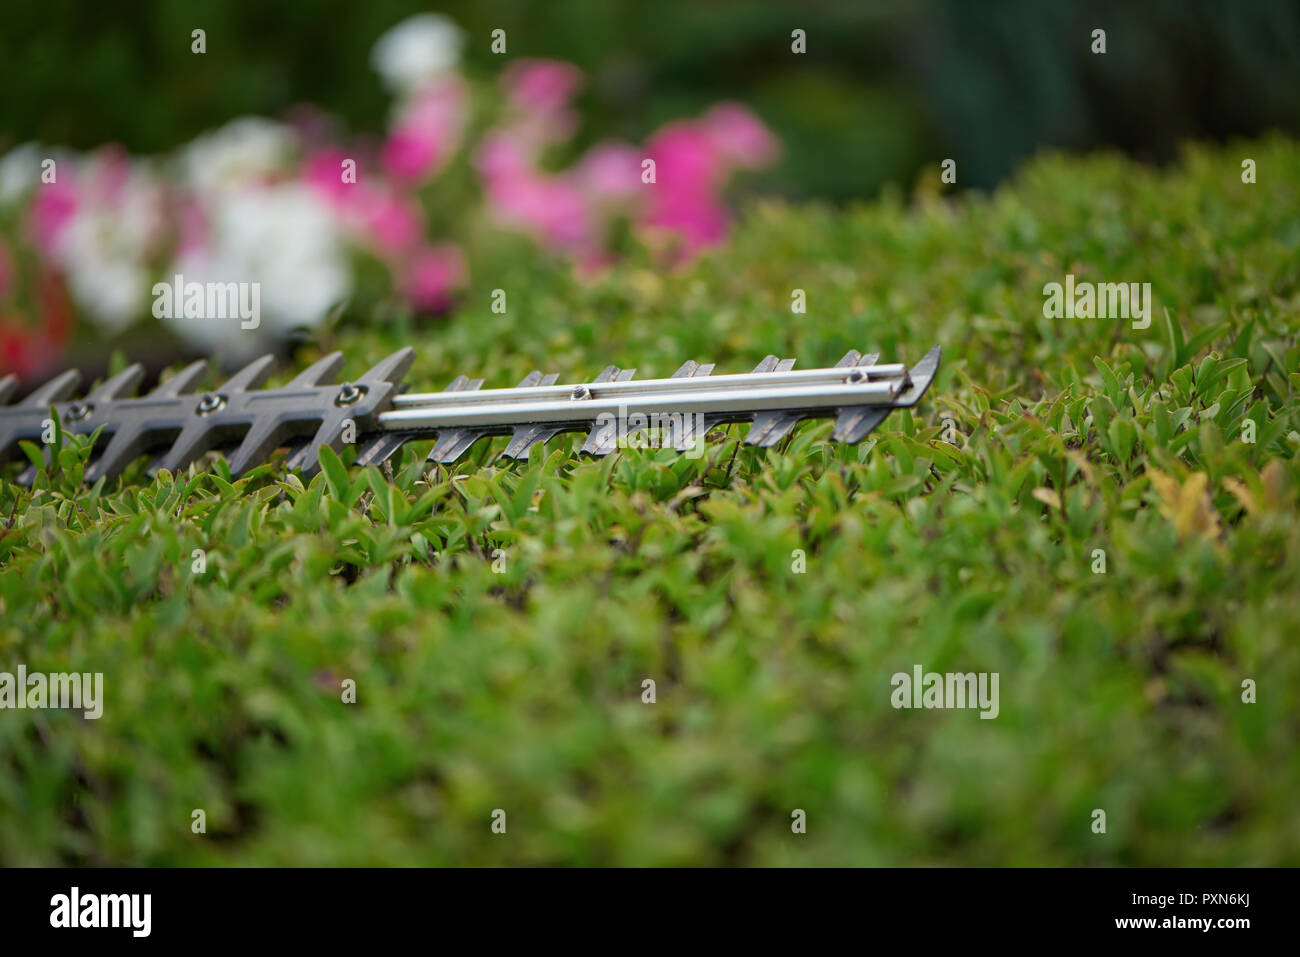 Selective focus of trimming bush with hedge cutter in garden. Close up of blade of electrical hedge trimmer cutting hedge. Gardener working, cutting bushes to ideal fence. Trimming work in garden. - Stock Image